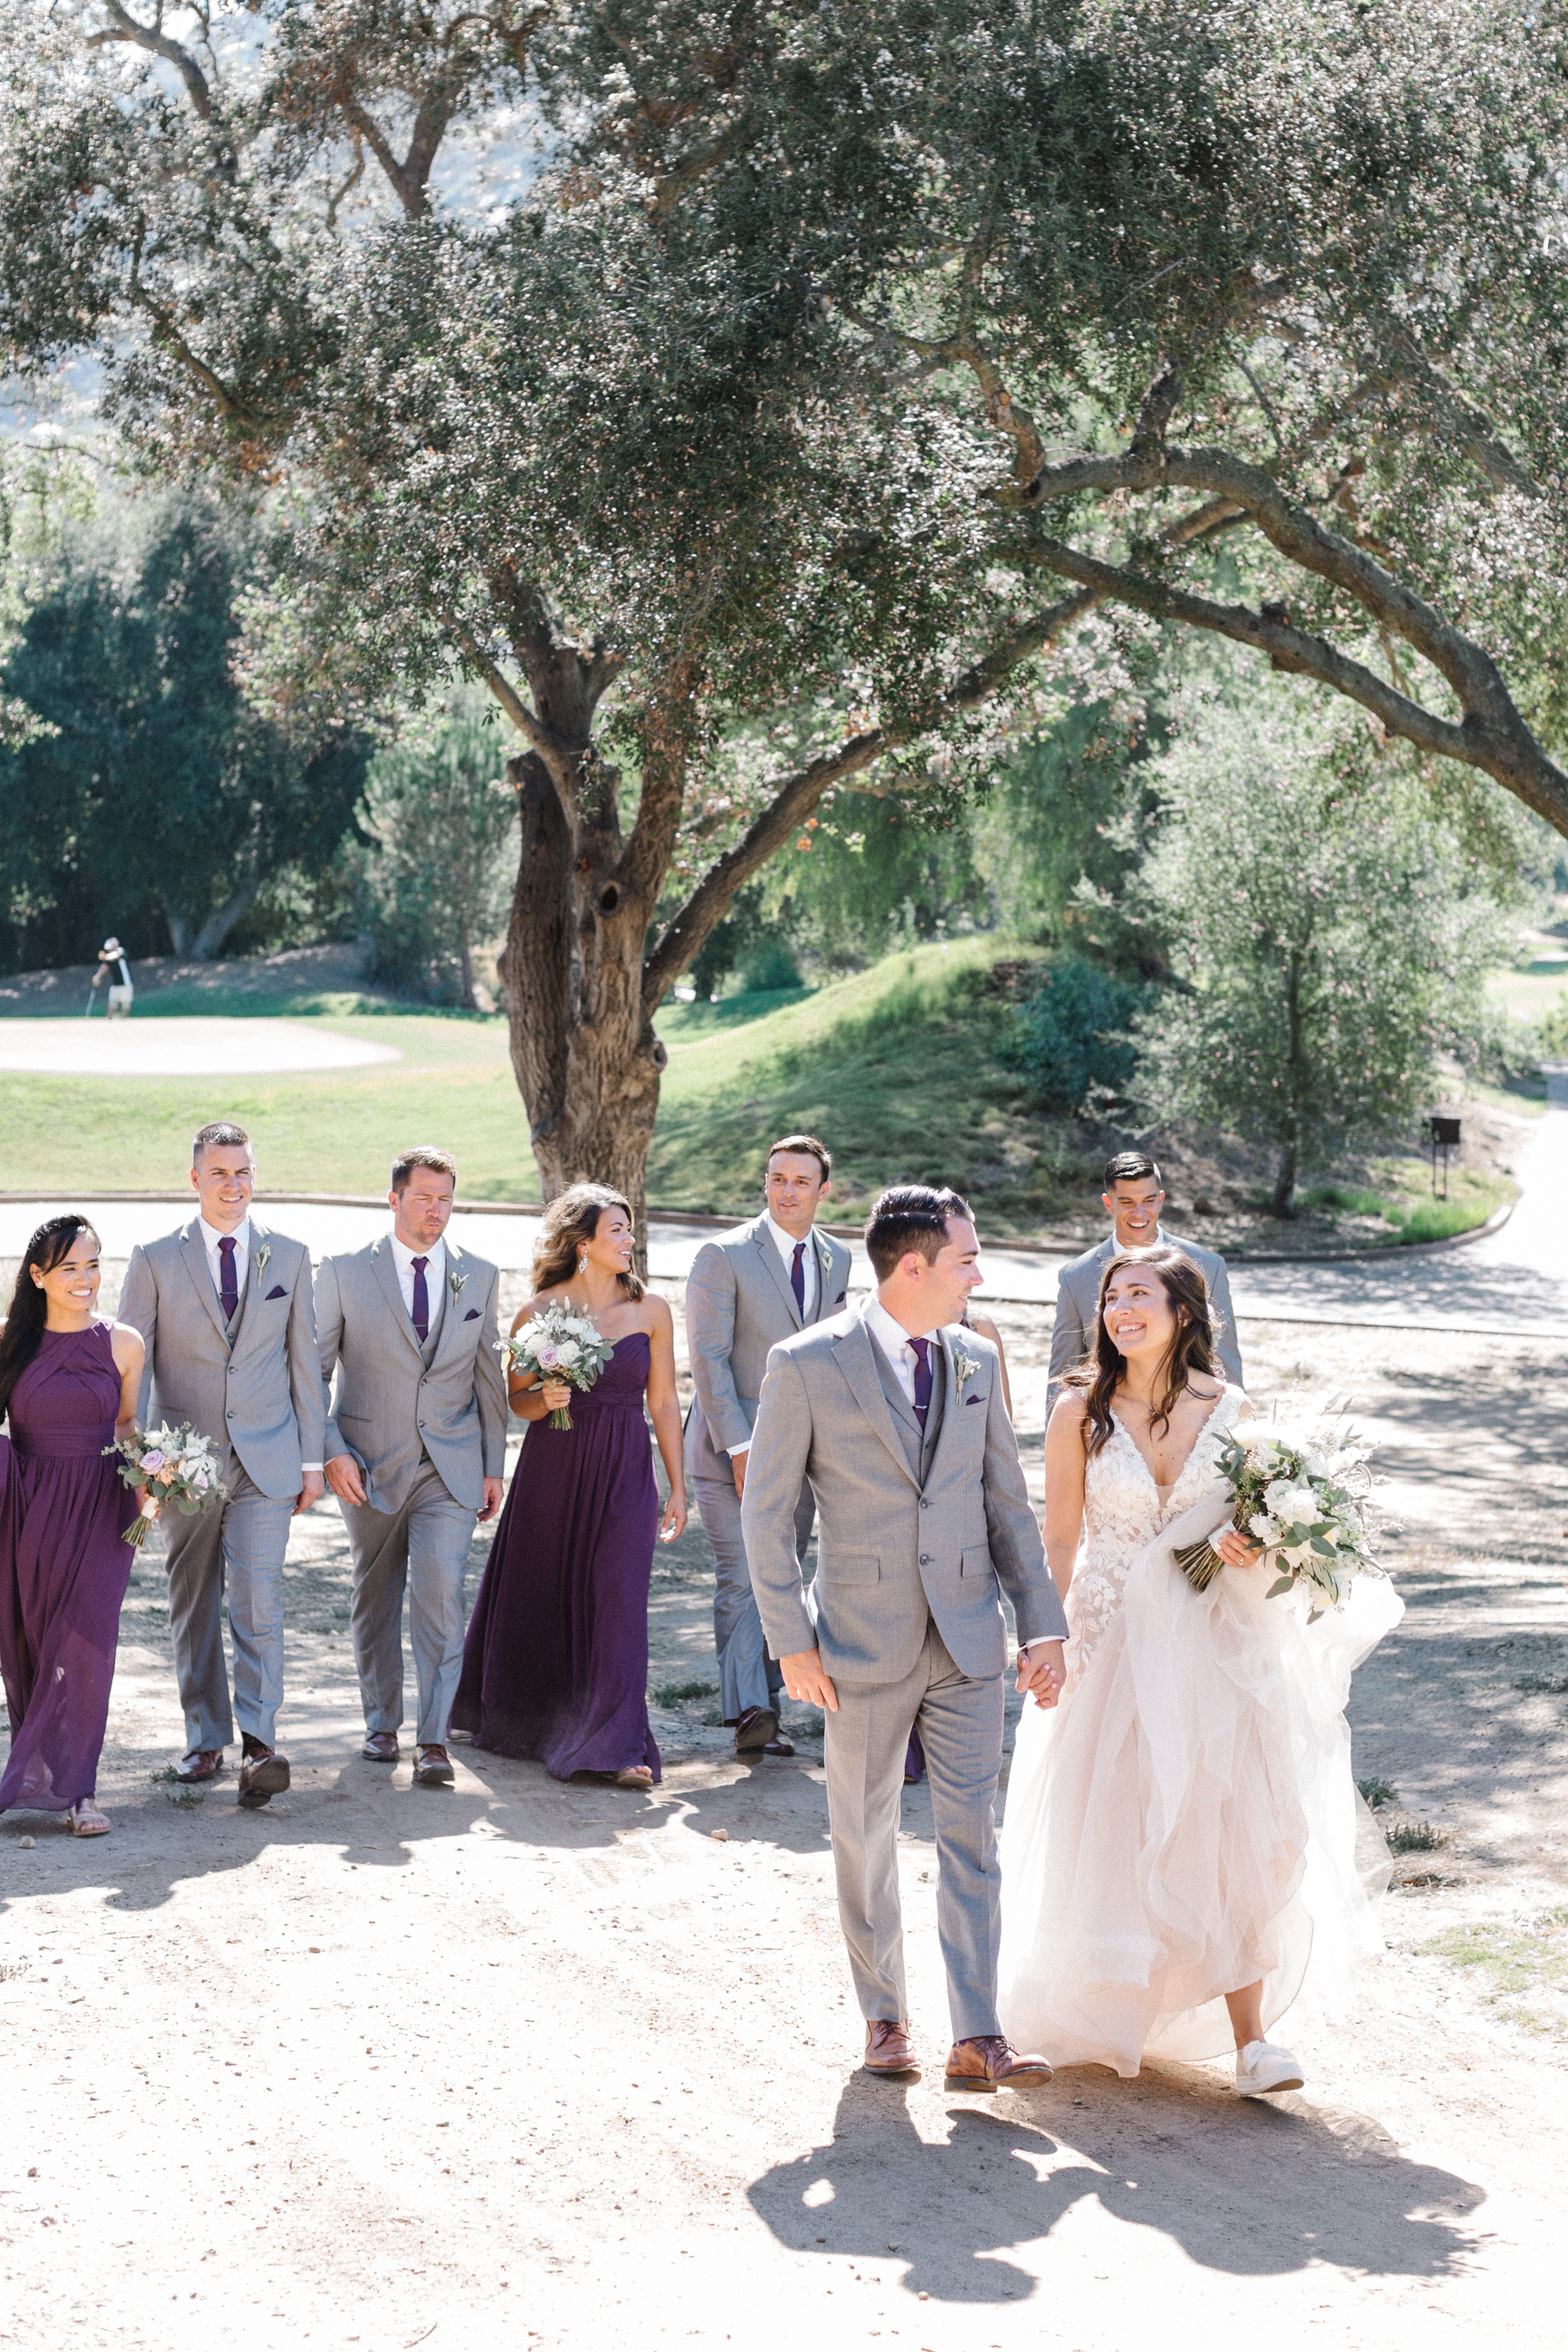 Jordan and Alex's Mt. Woodson Ramona Wedding Great Woodland Photography 8-31-19-13.jpg